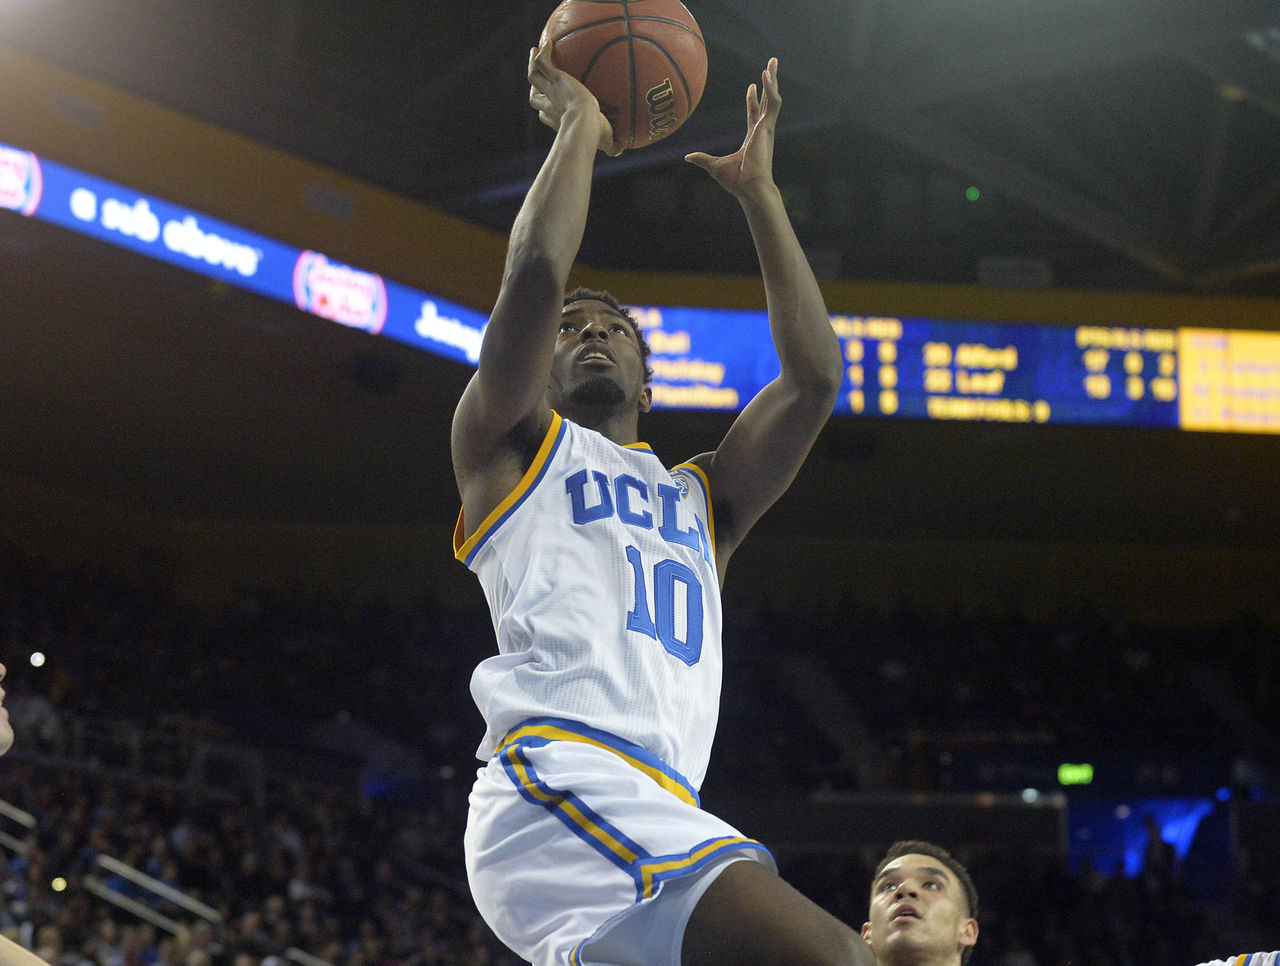 Cropped_2017-01-09t035145z_1840431236_nocid_rtrmadp_3_ncaa-basketball-stanford-at-ucla